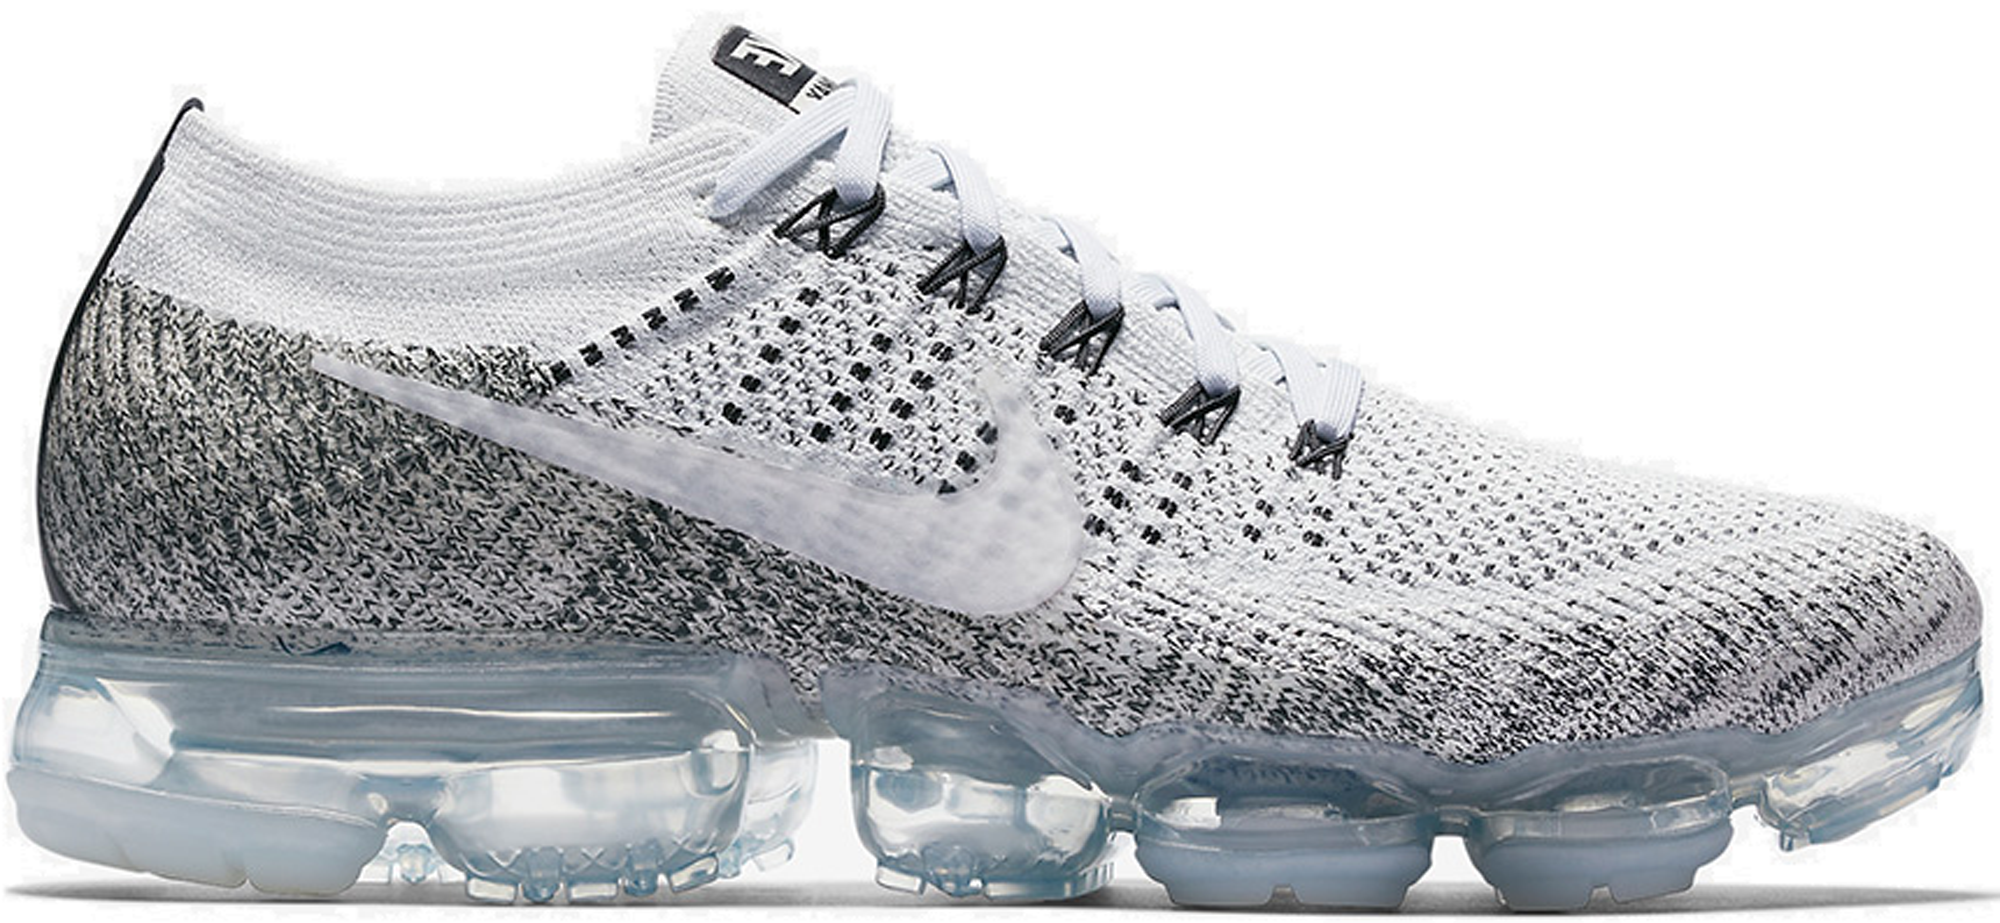 Cheap Nike Air Vapormax Running Shoes Sale Online 2018,Cheap Air VaporMax Outlet 2018